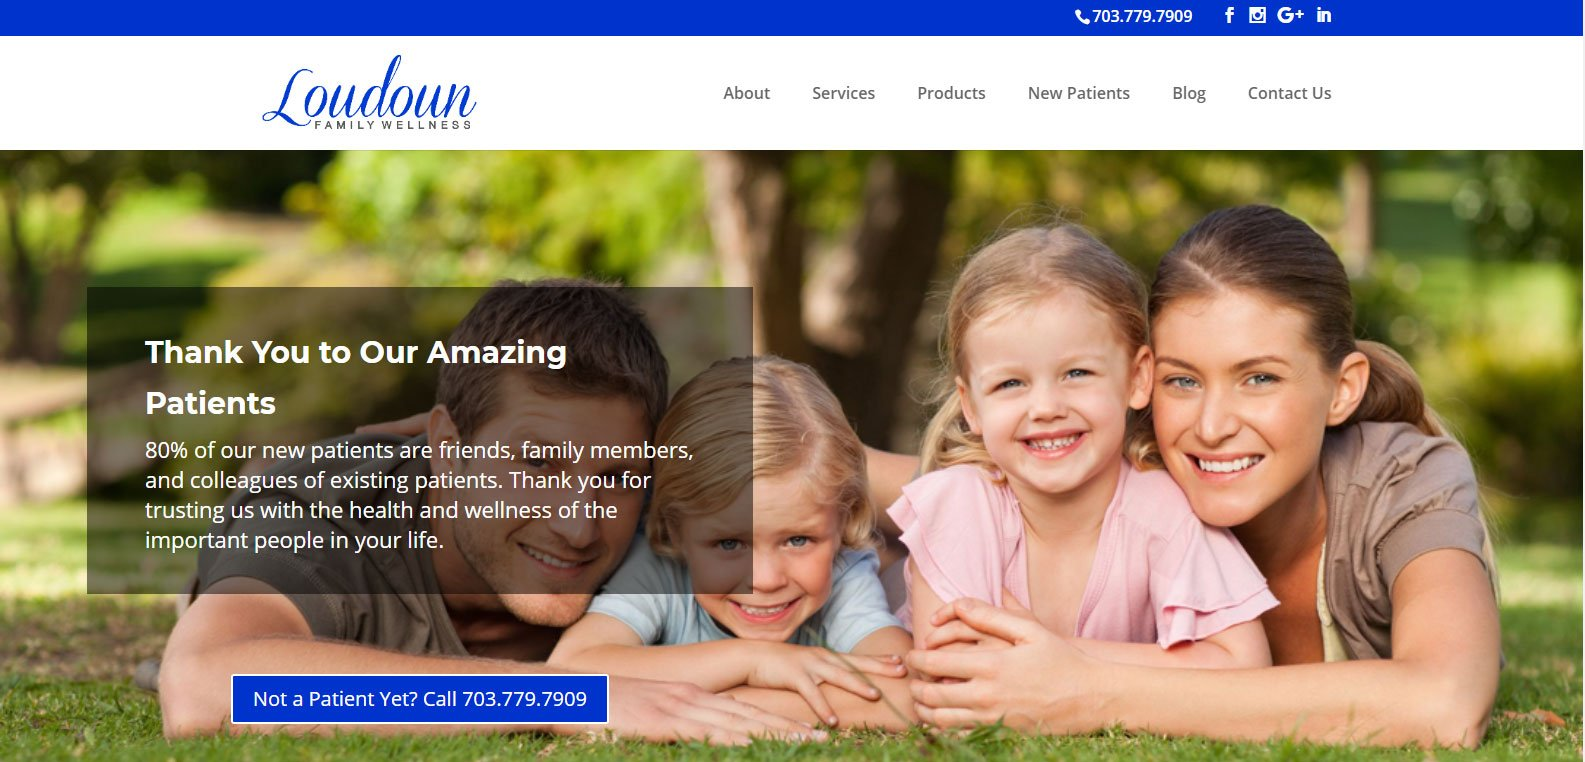 Loudoun Family Wellness Home Page